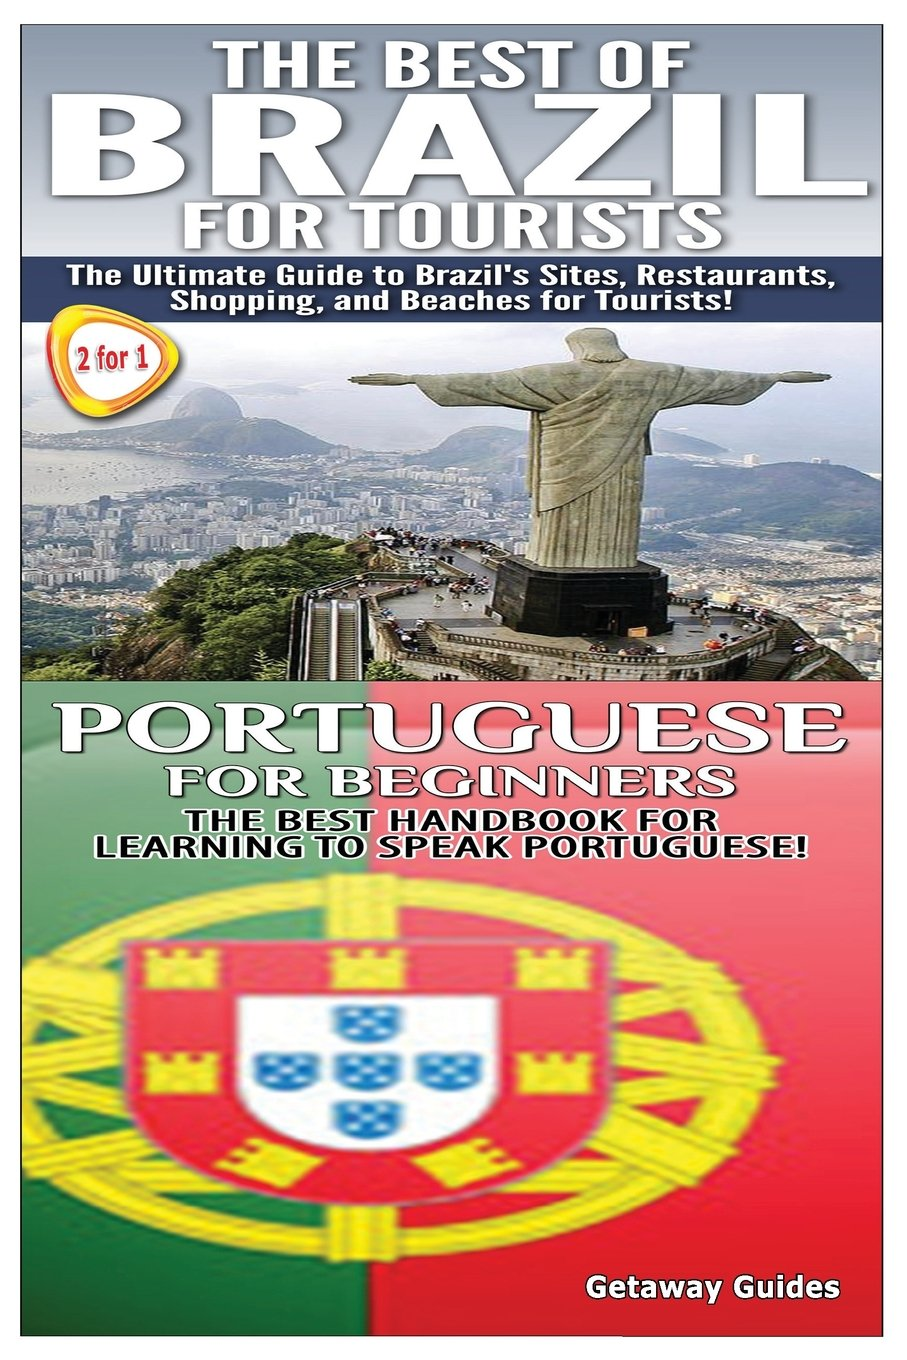 Download The Best of Brazil For Tourists & Portuguese For Beginners (Travel Guides Box Set) (Volume 2) ebook